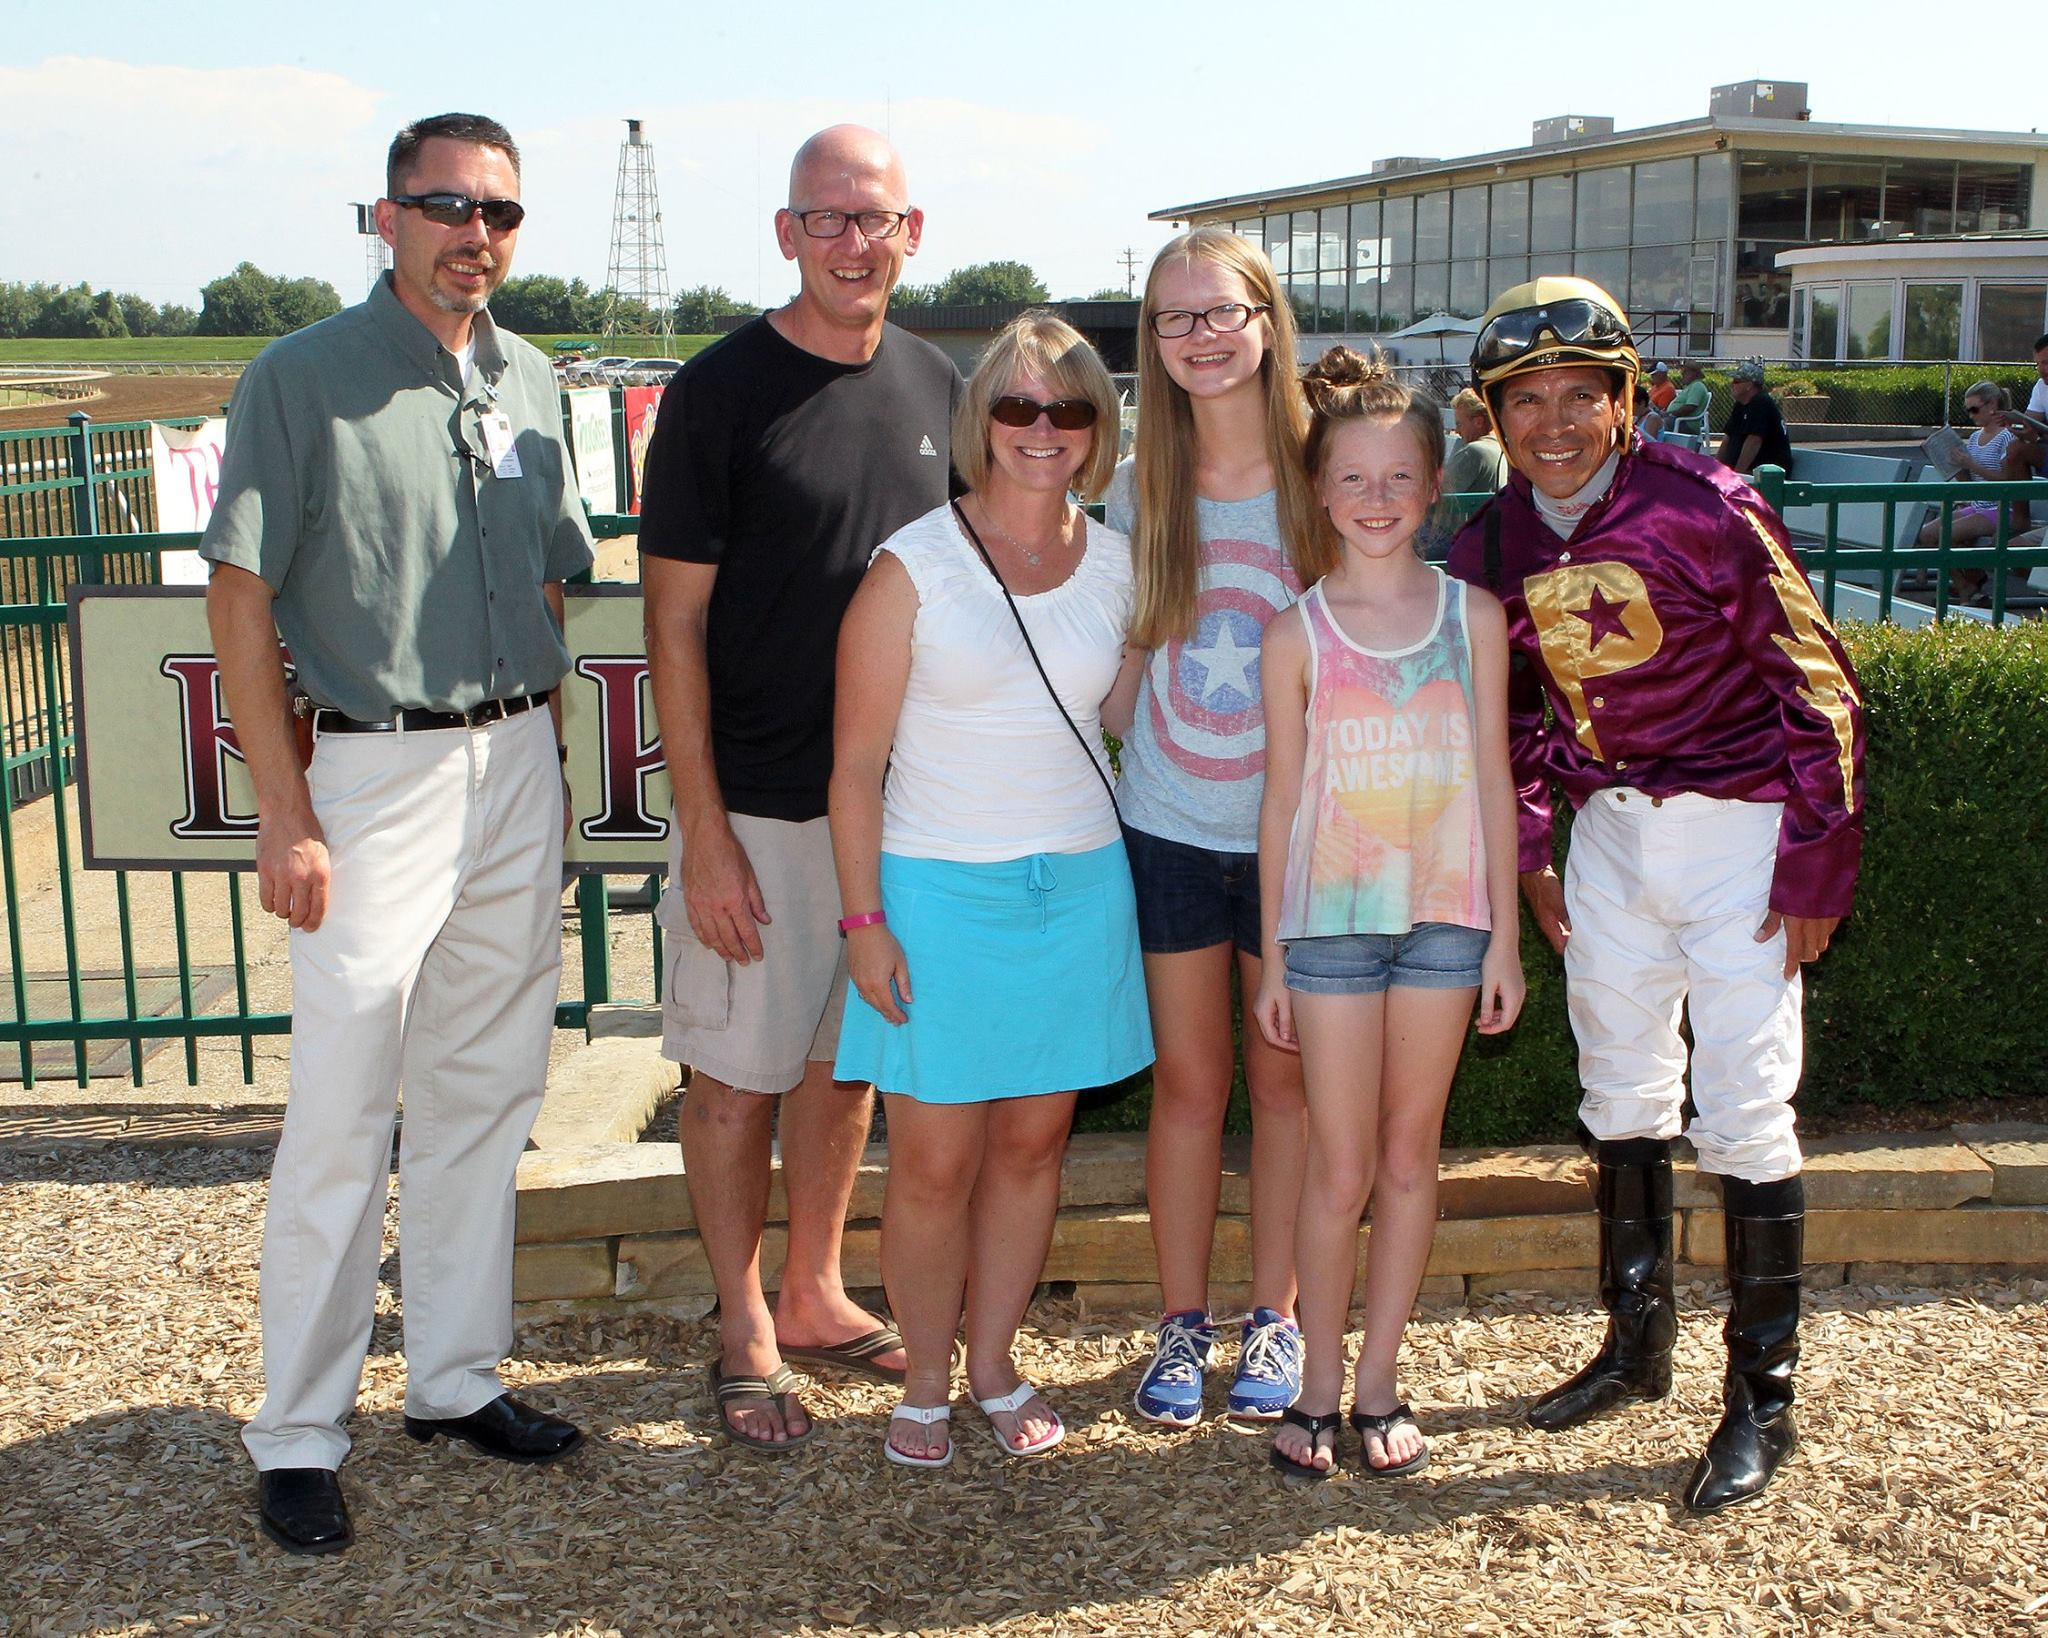 Photo courtesy Kurtis Coady of Coady Photography. Us, with our host Mike and winning jockey Jesus Castanon. He's a big deal, won the Preakness in 2011 and has won over 2,000 races!